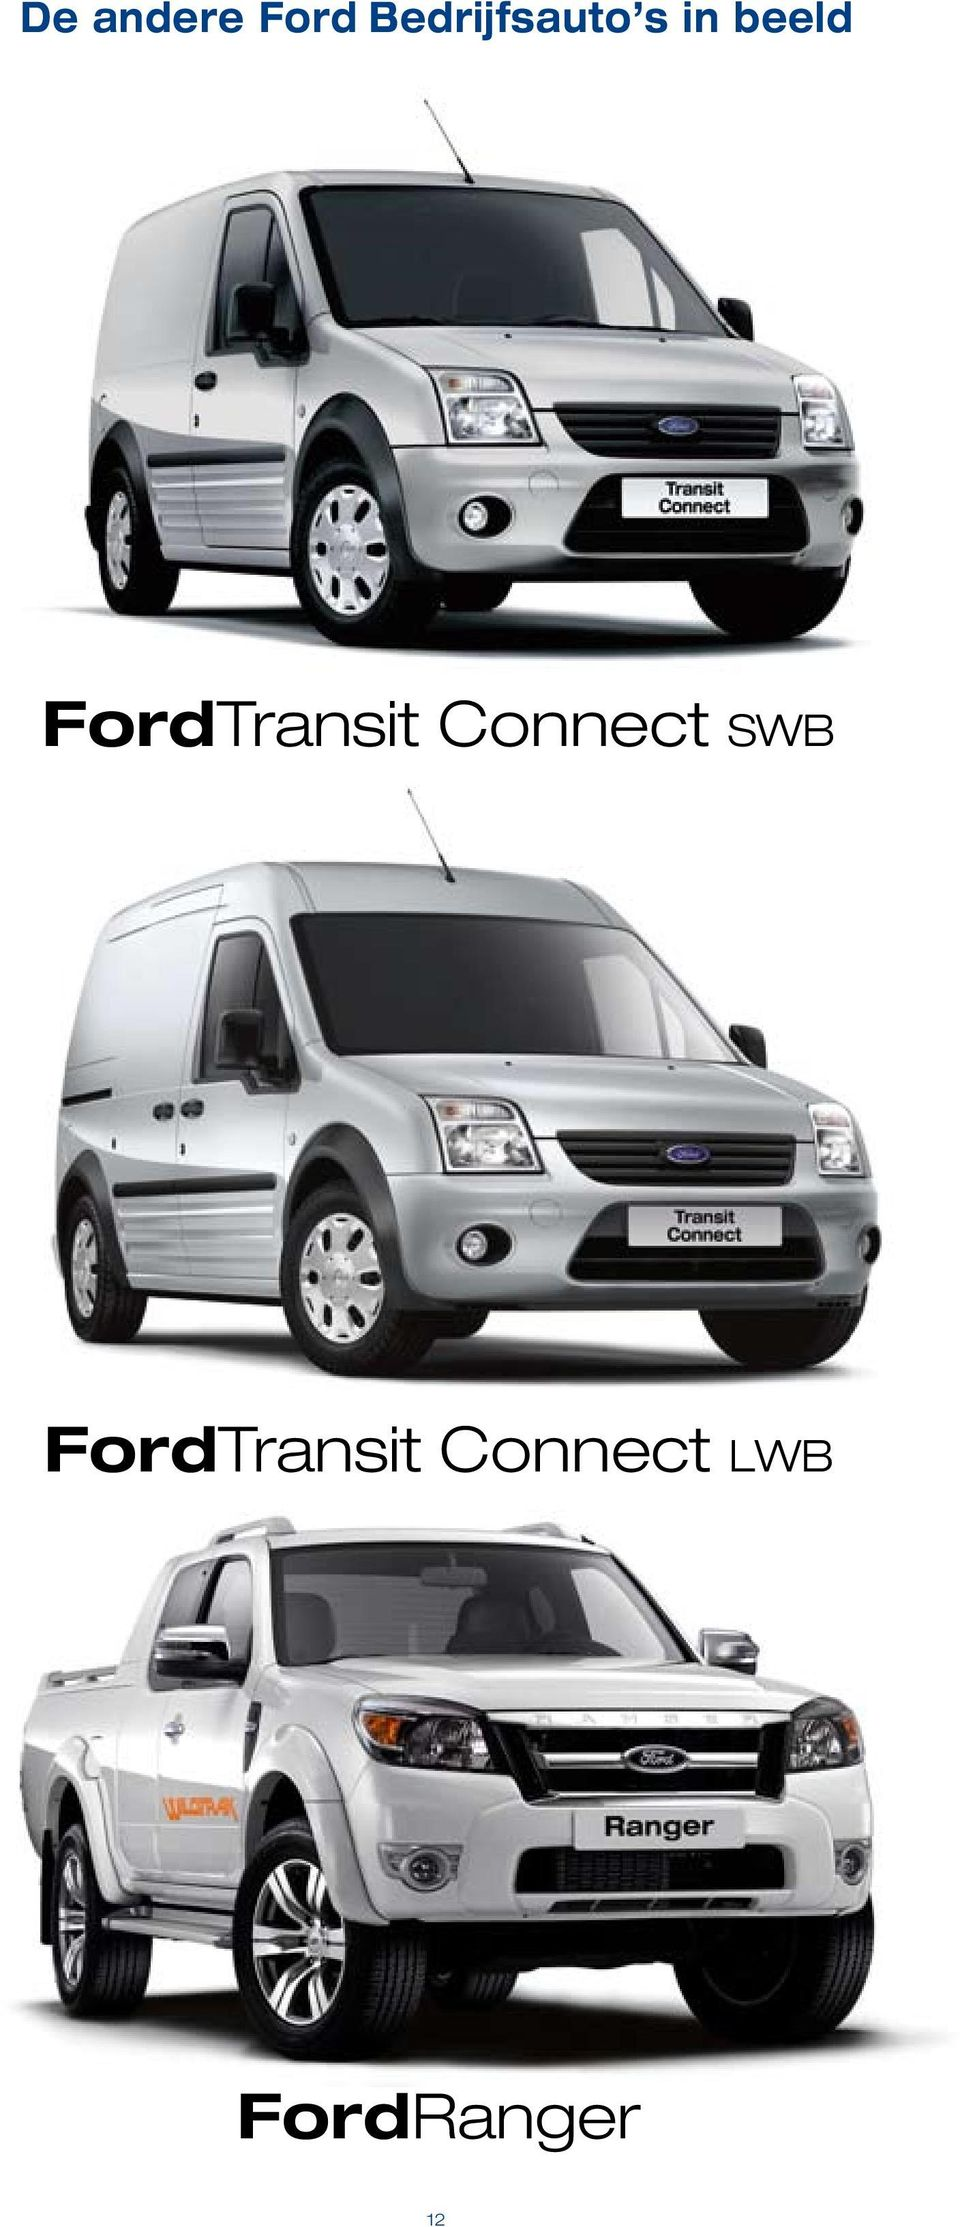 FordTransit Connect s w b